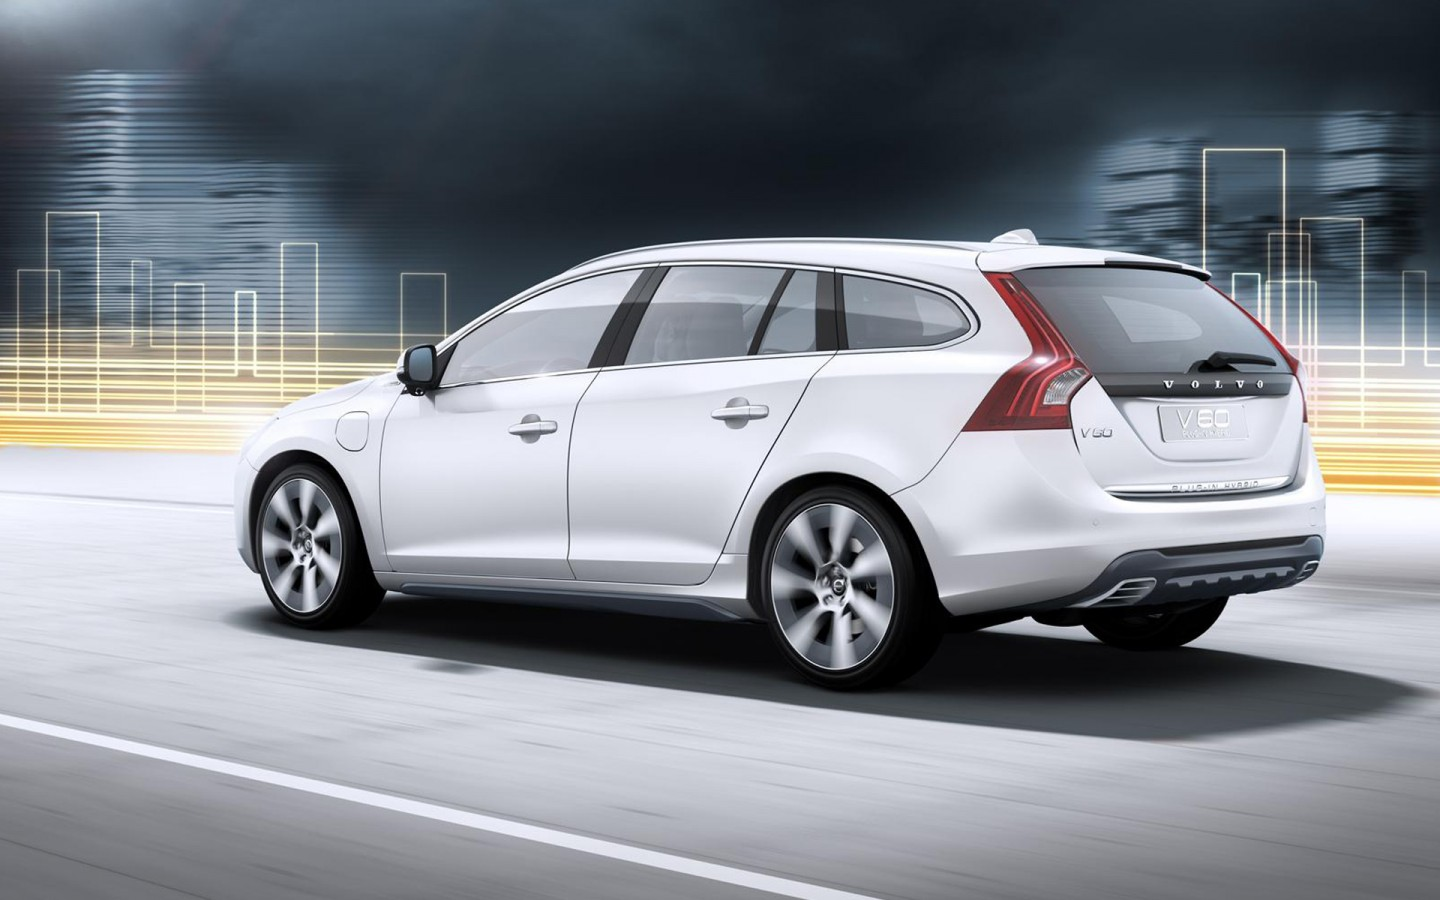 2012 volvo v60 hybrid 2 wallpaper hd car wallpapers. Black Bedroom Furniture Sets. Home Design Ideas